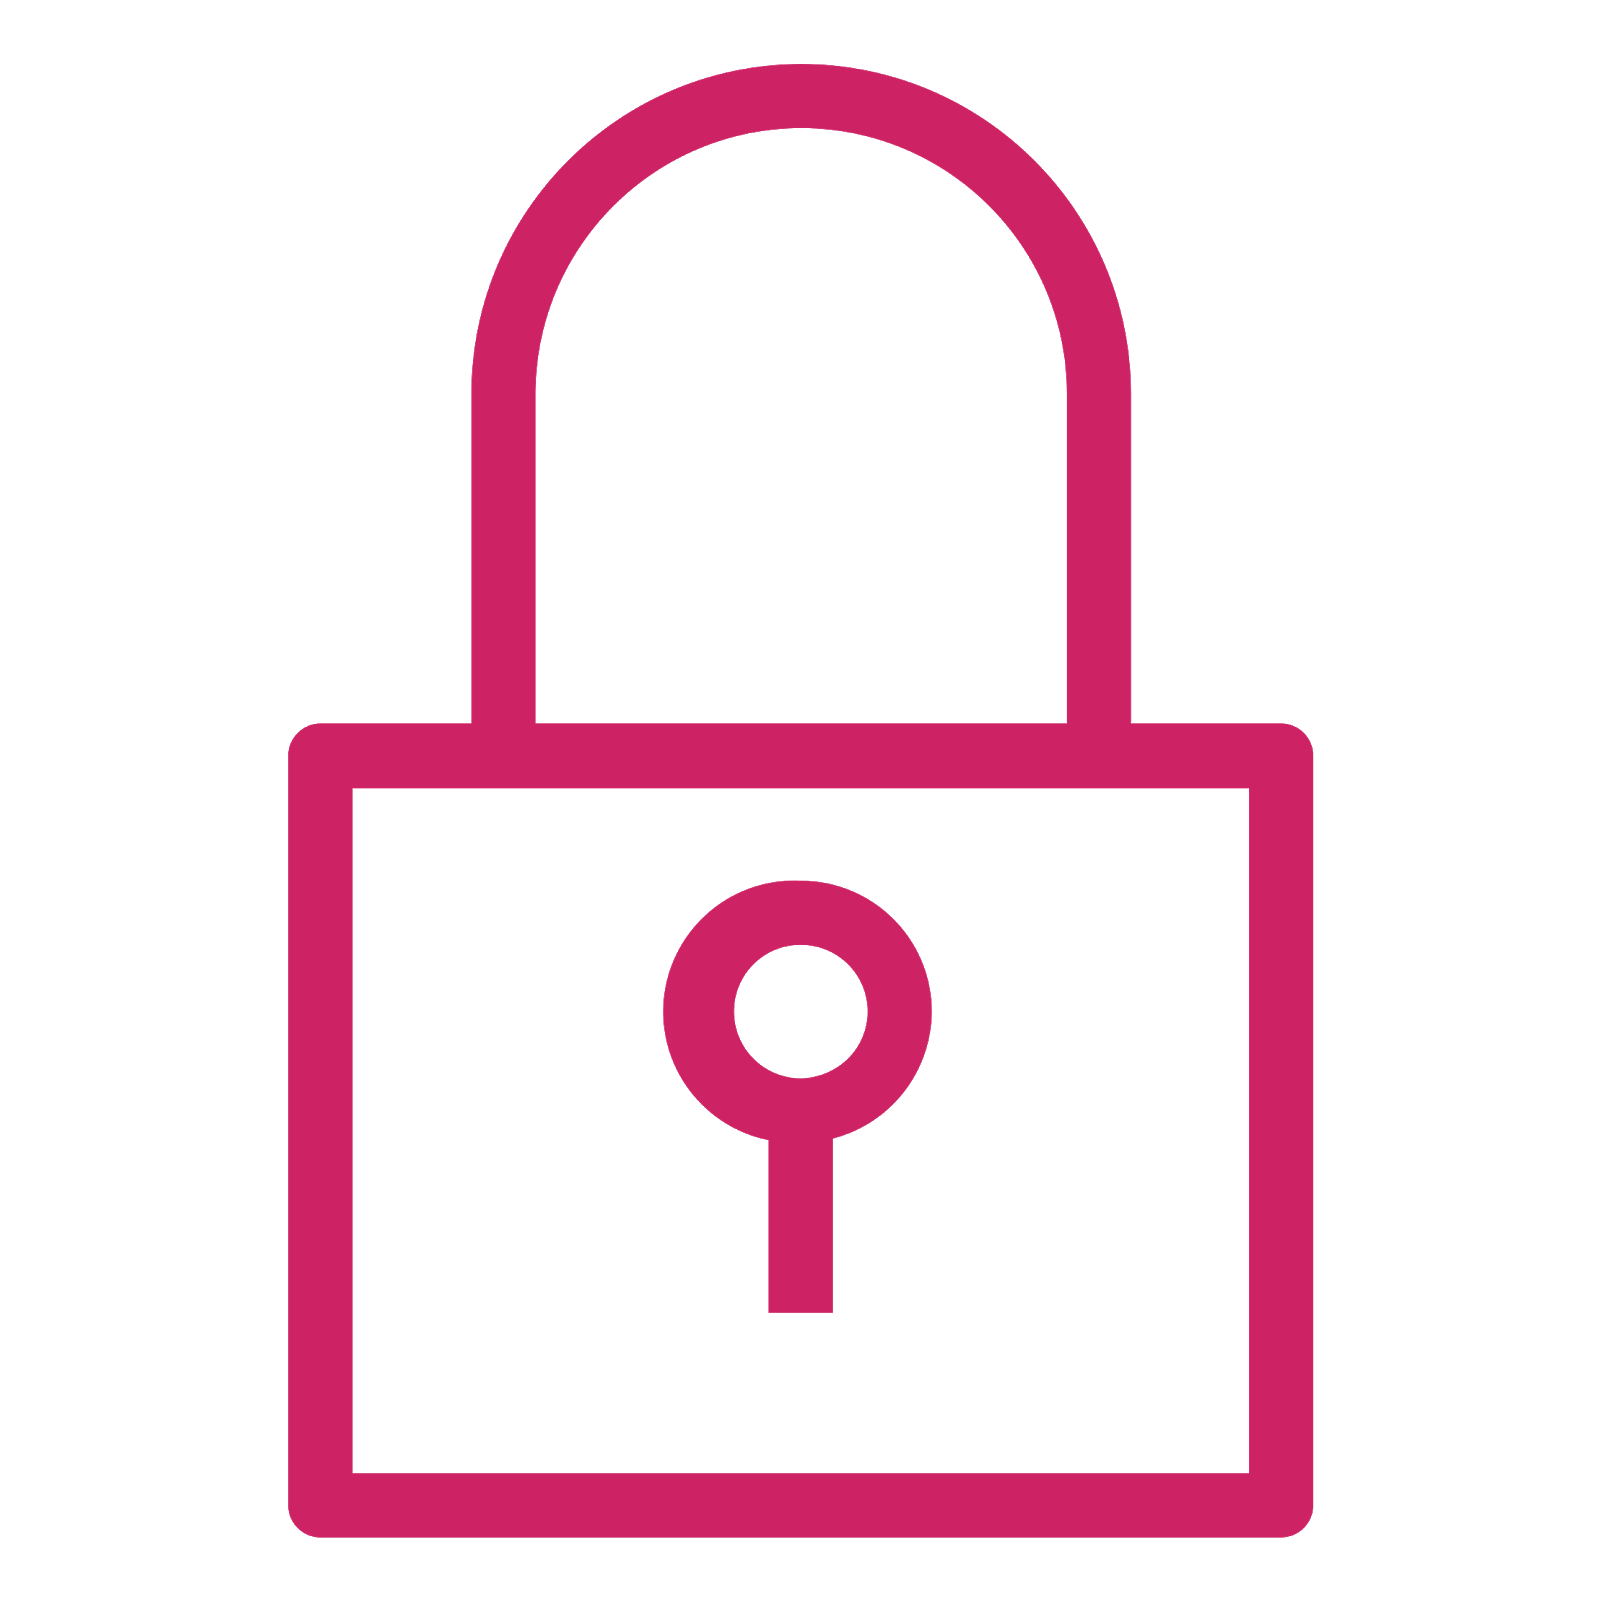 Permissions icon depicting a closed lock